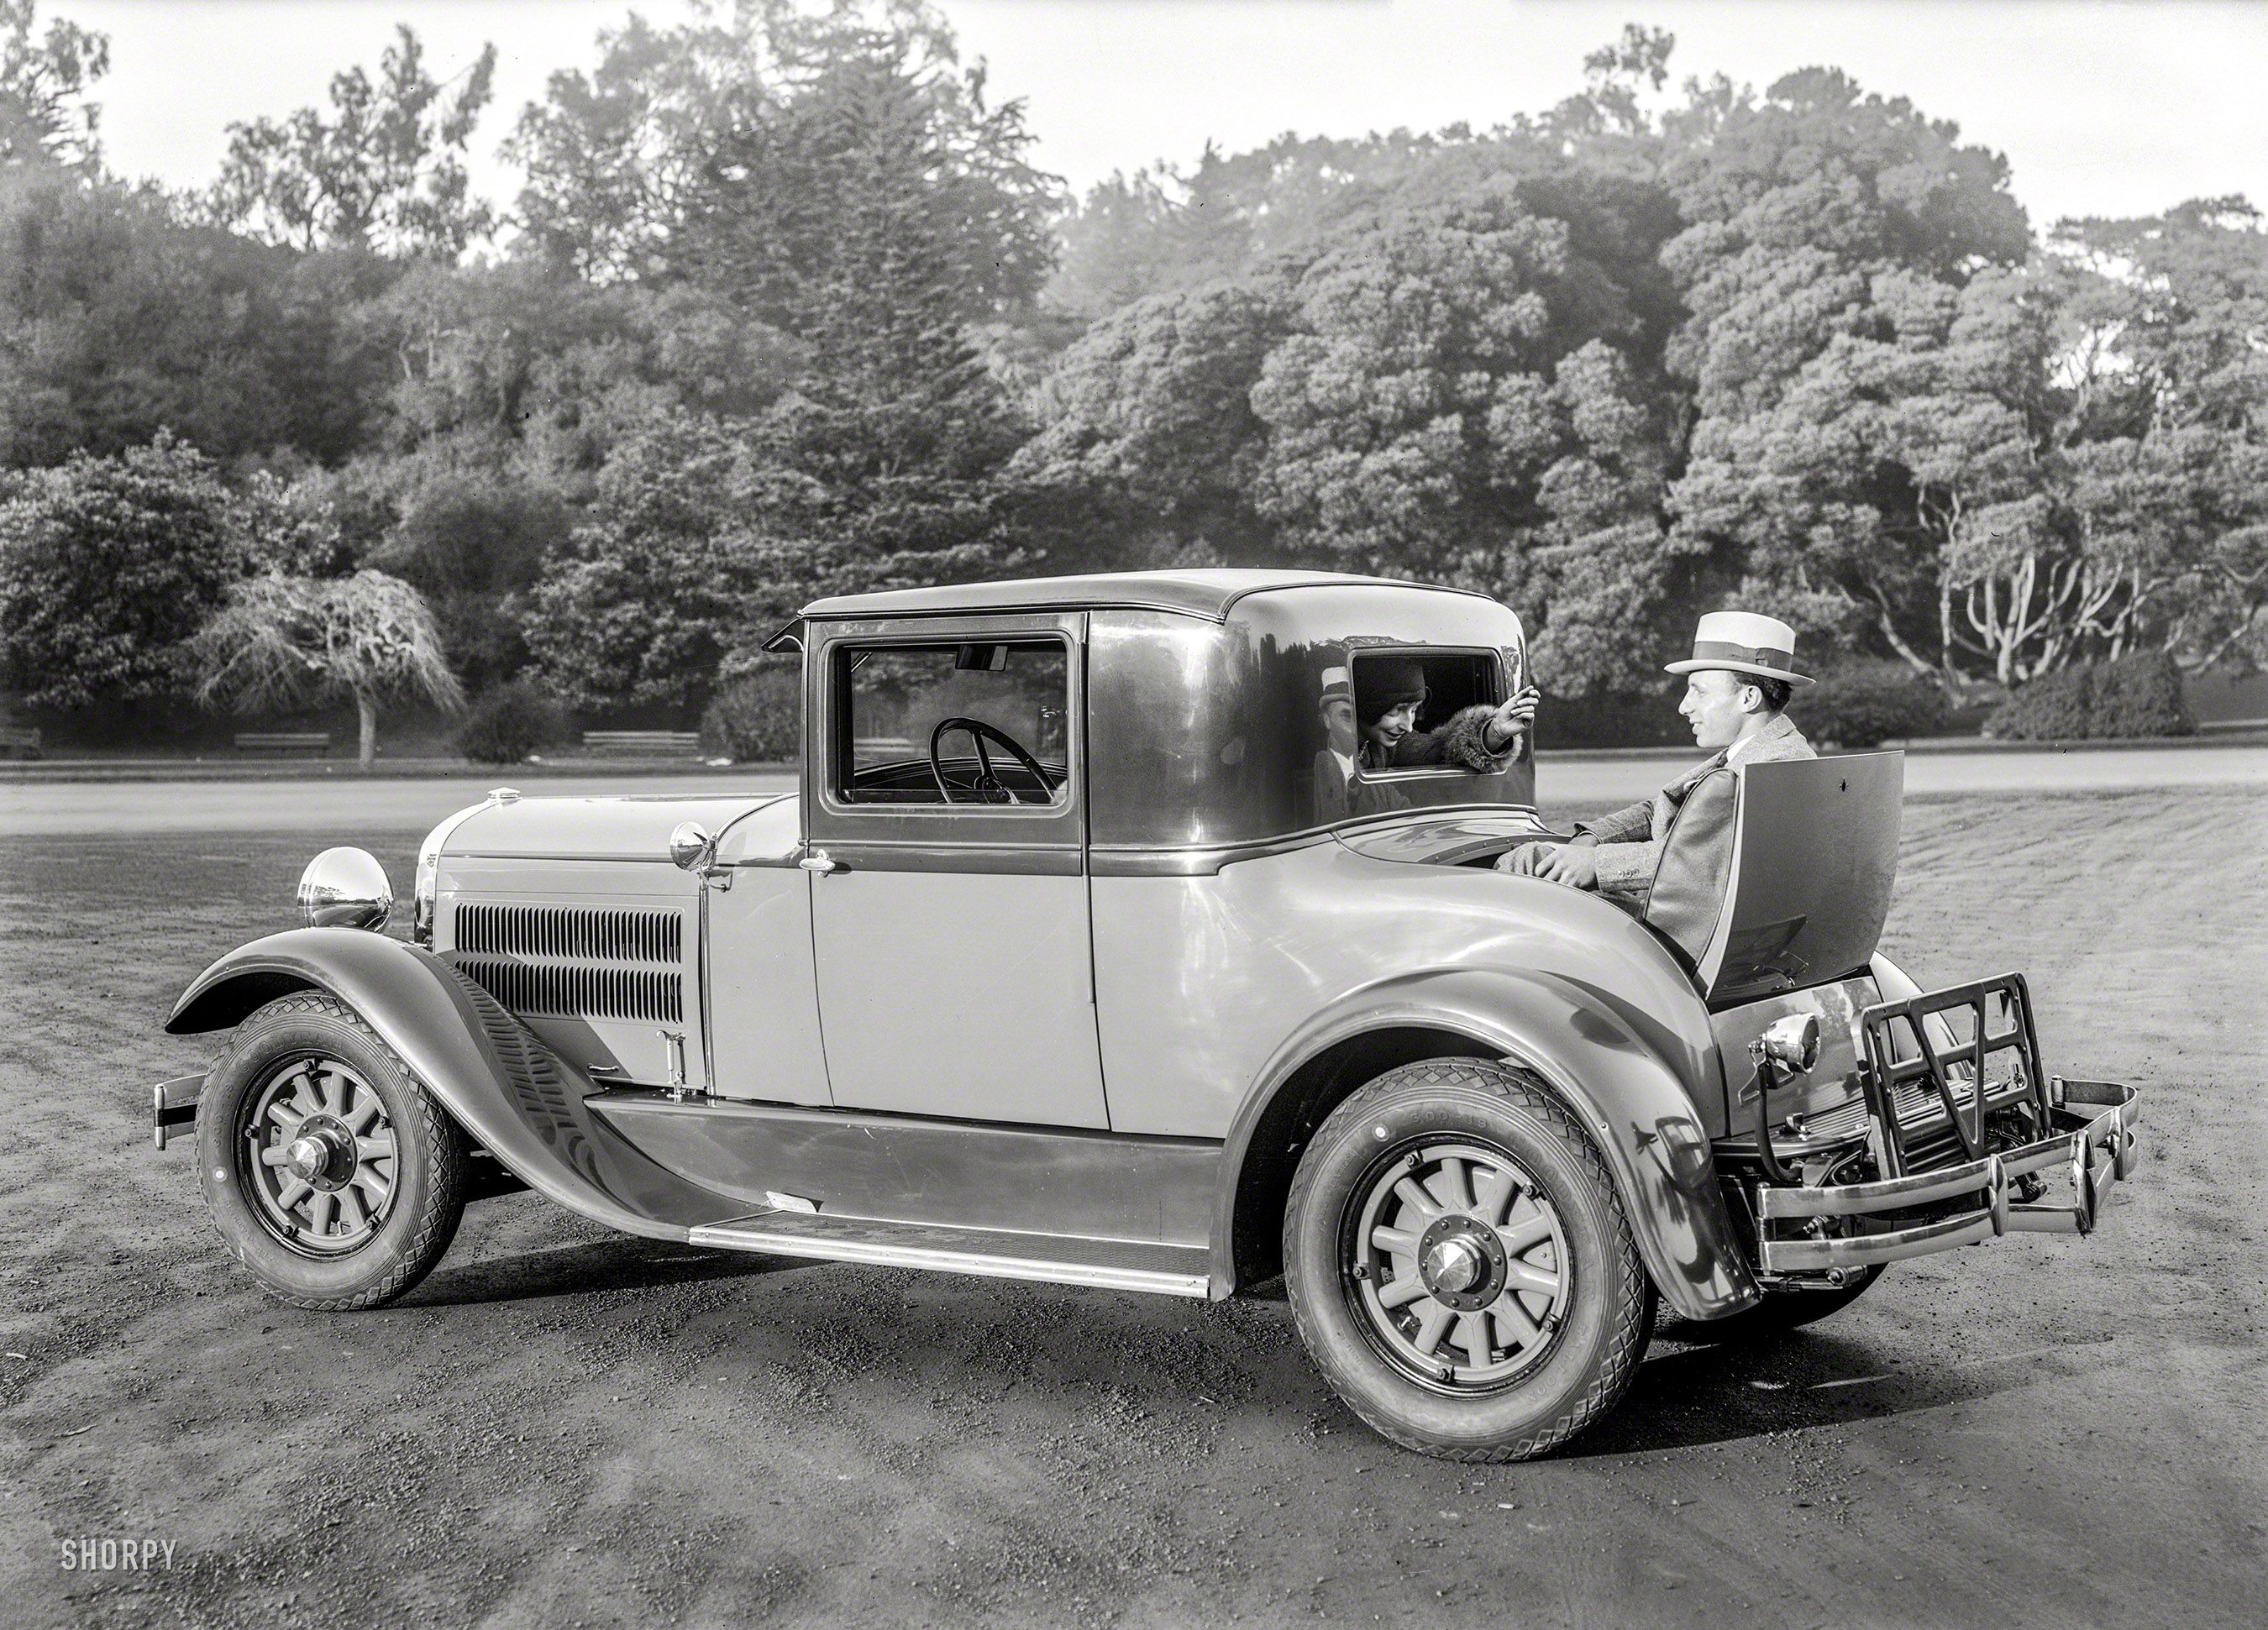 Car With Rumble Seat Somewhere In The Bay Area 5x7 Glass Negative By Christopher Helin Shorpy Historic Picture Archive